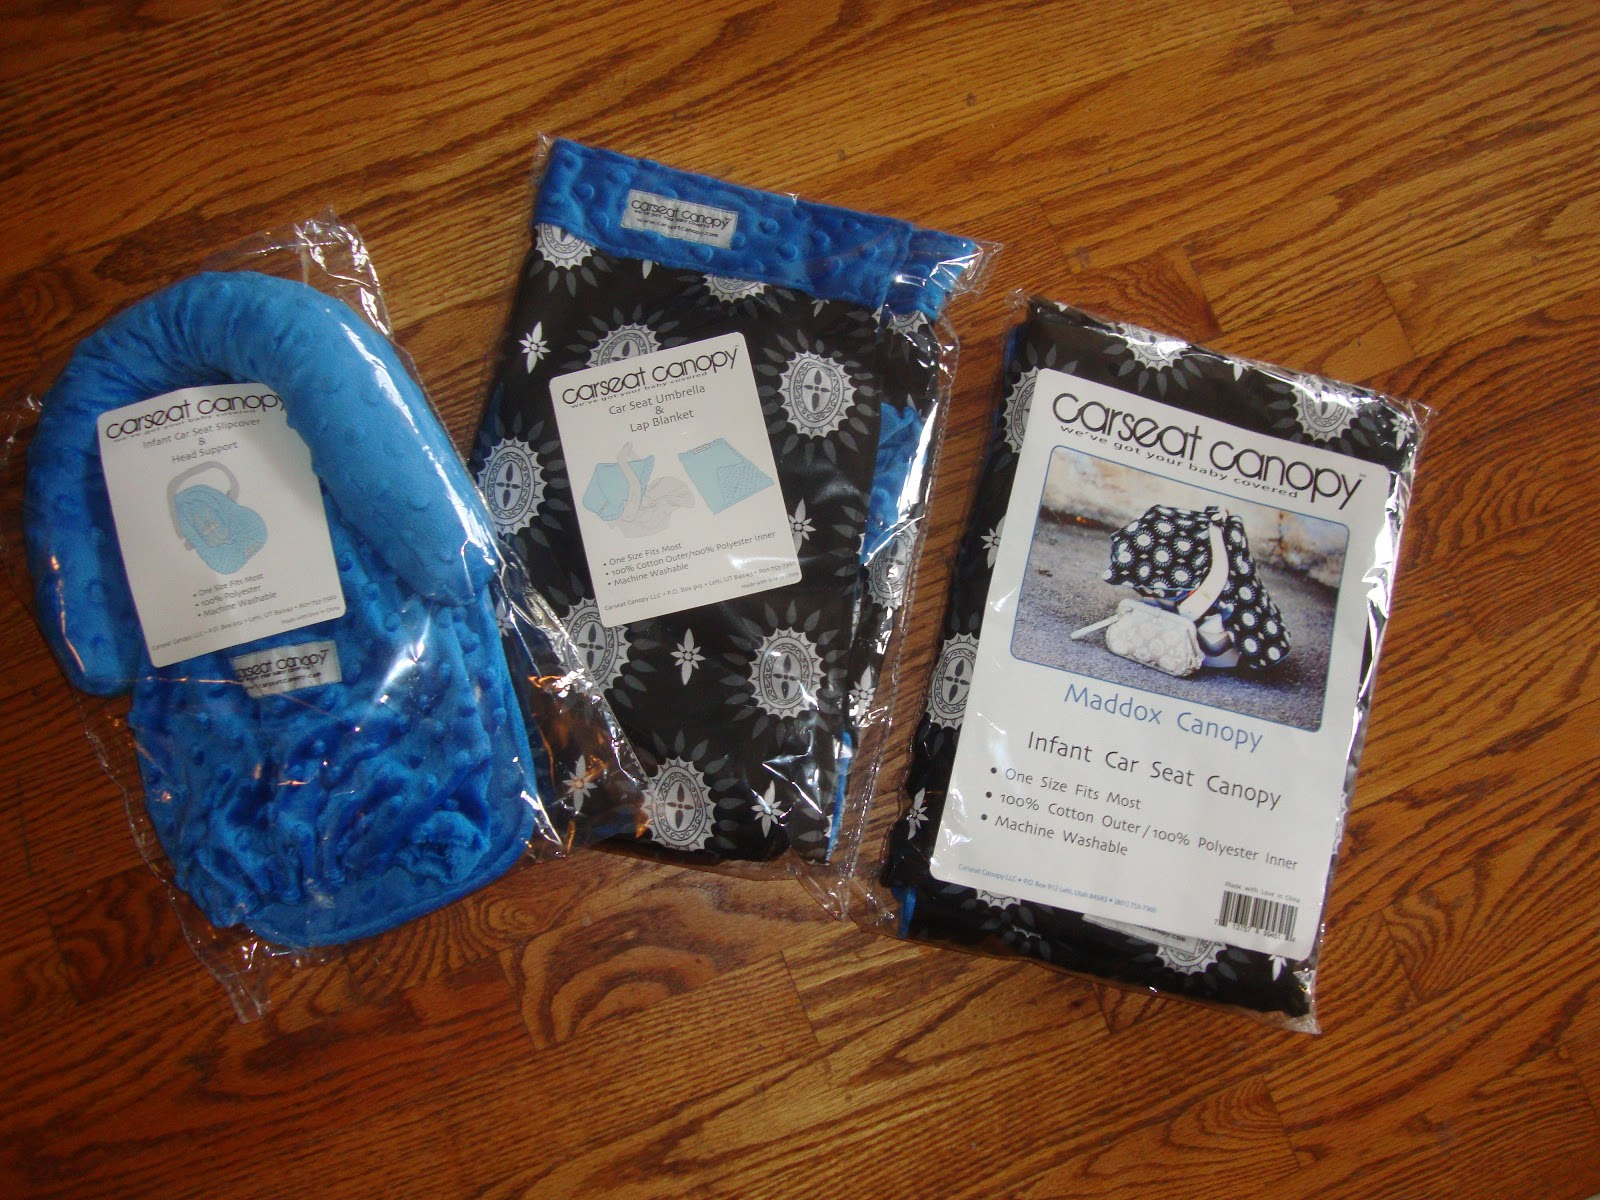 On the packaging it shows you where each piece goes. They have alot of different colors to choose from and this pattern is called the Maddox Whole Caboodle. & Trying To Go Green: Carseat Canopy Whole Caboodle Review u0026 Giveaway